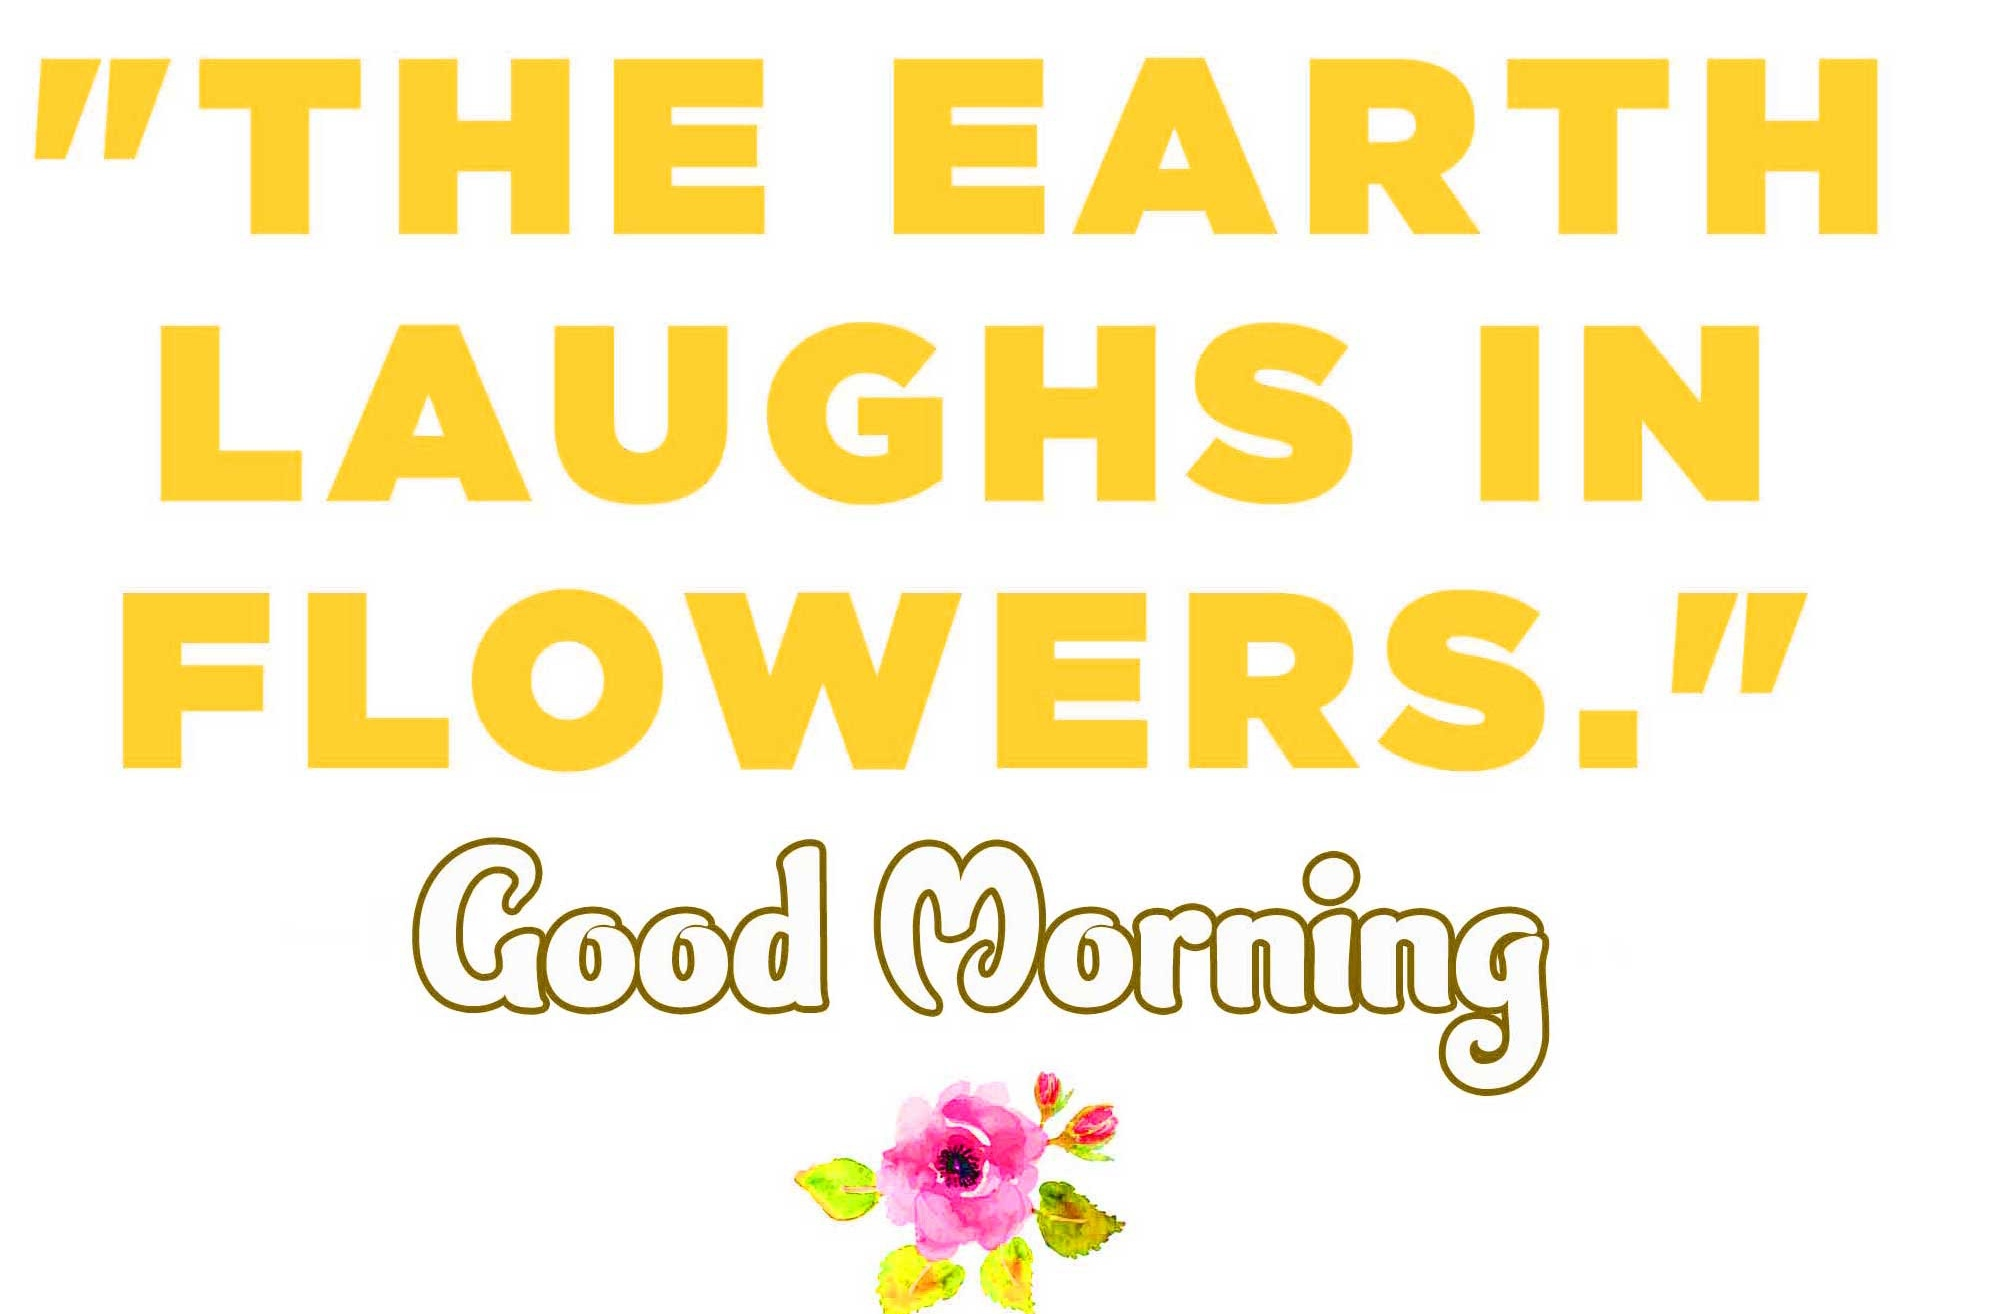 Good Morning Wishes Images with positive thoughts Pics Free for Facebook